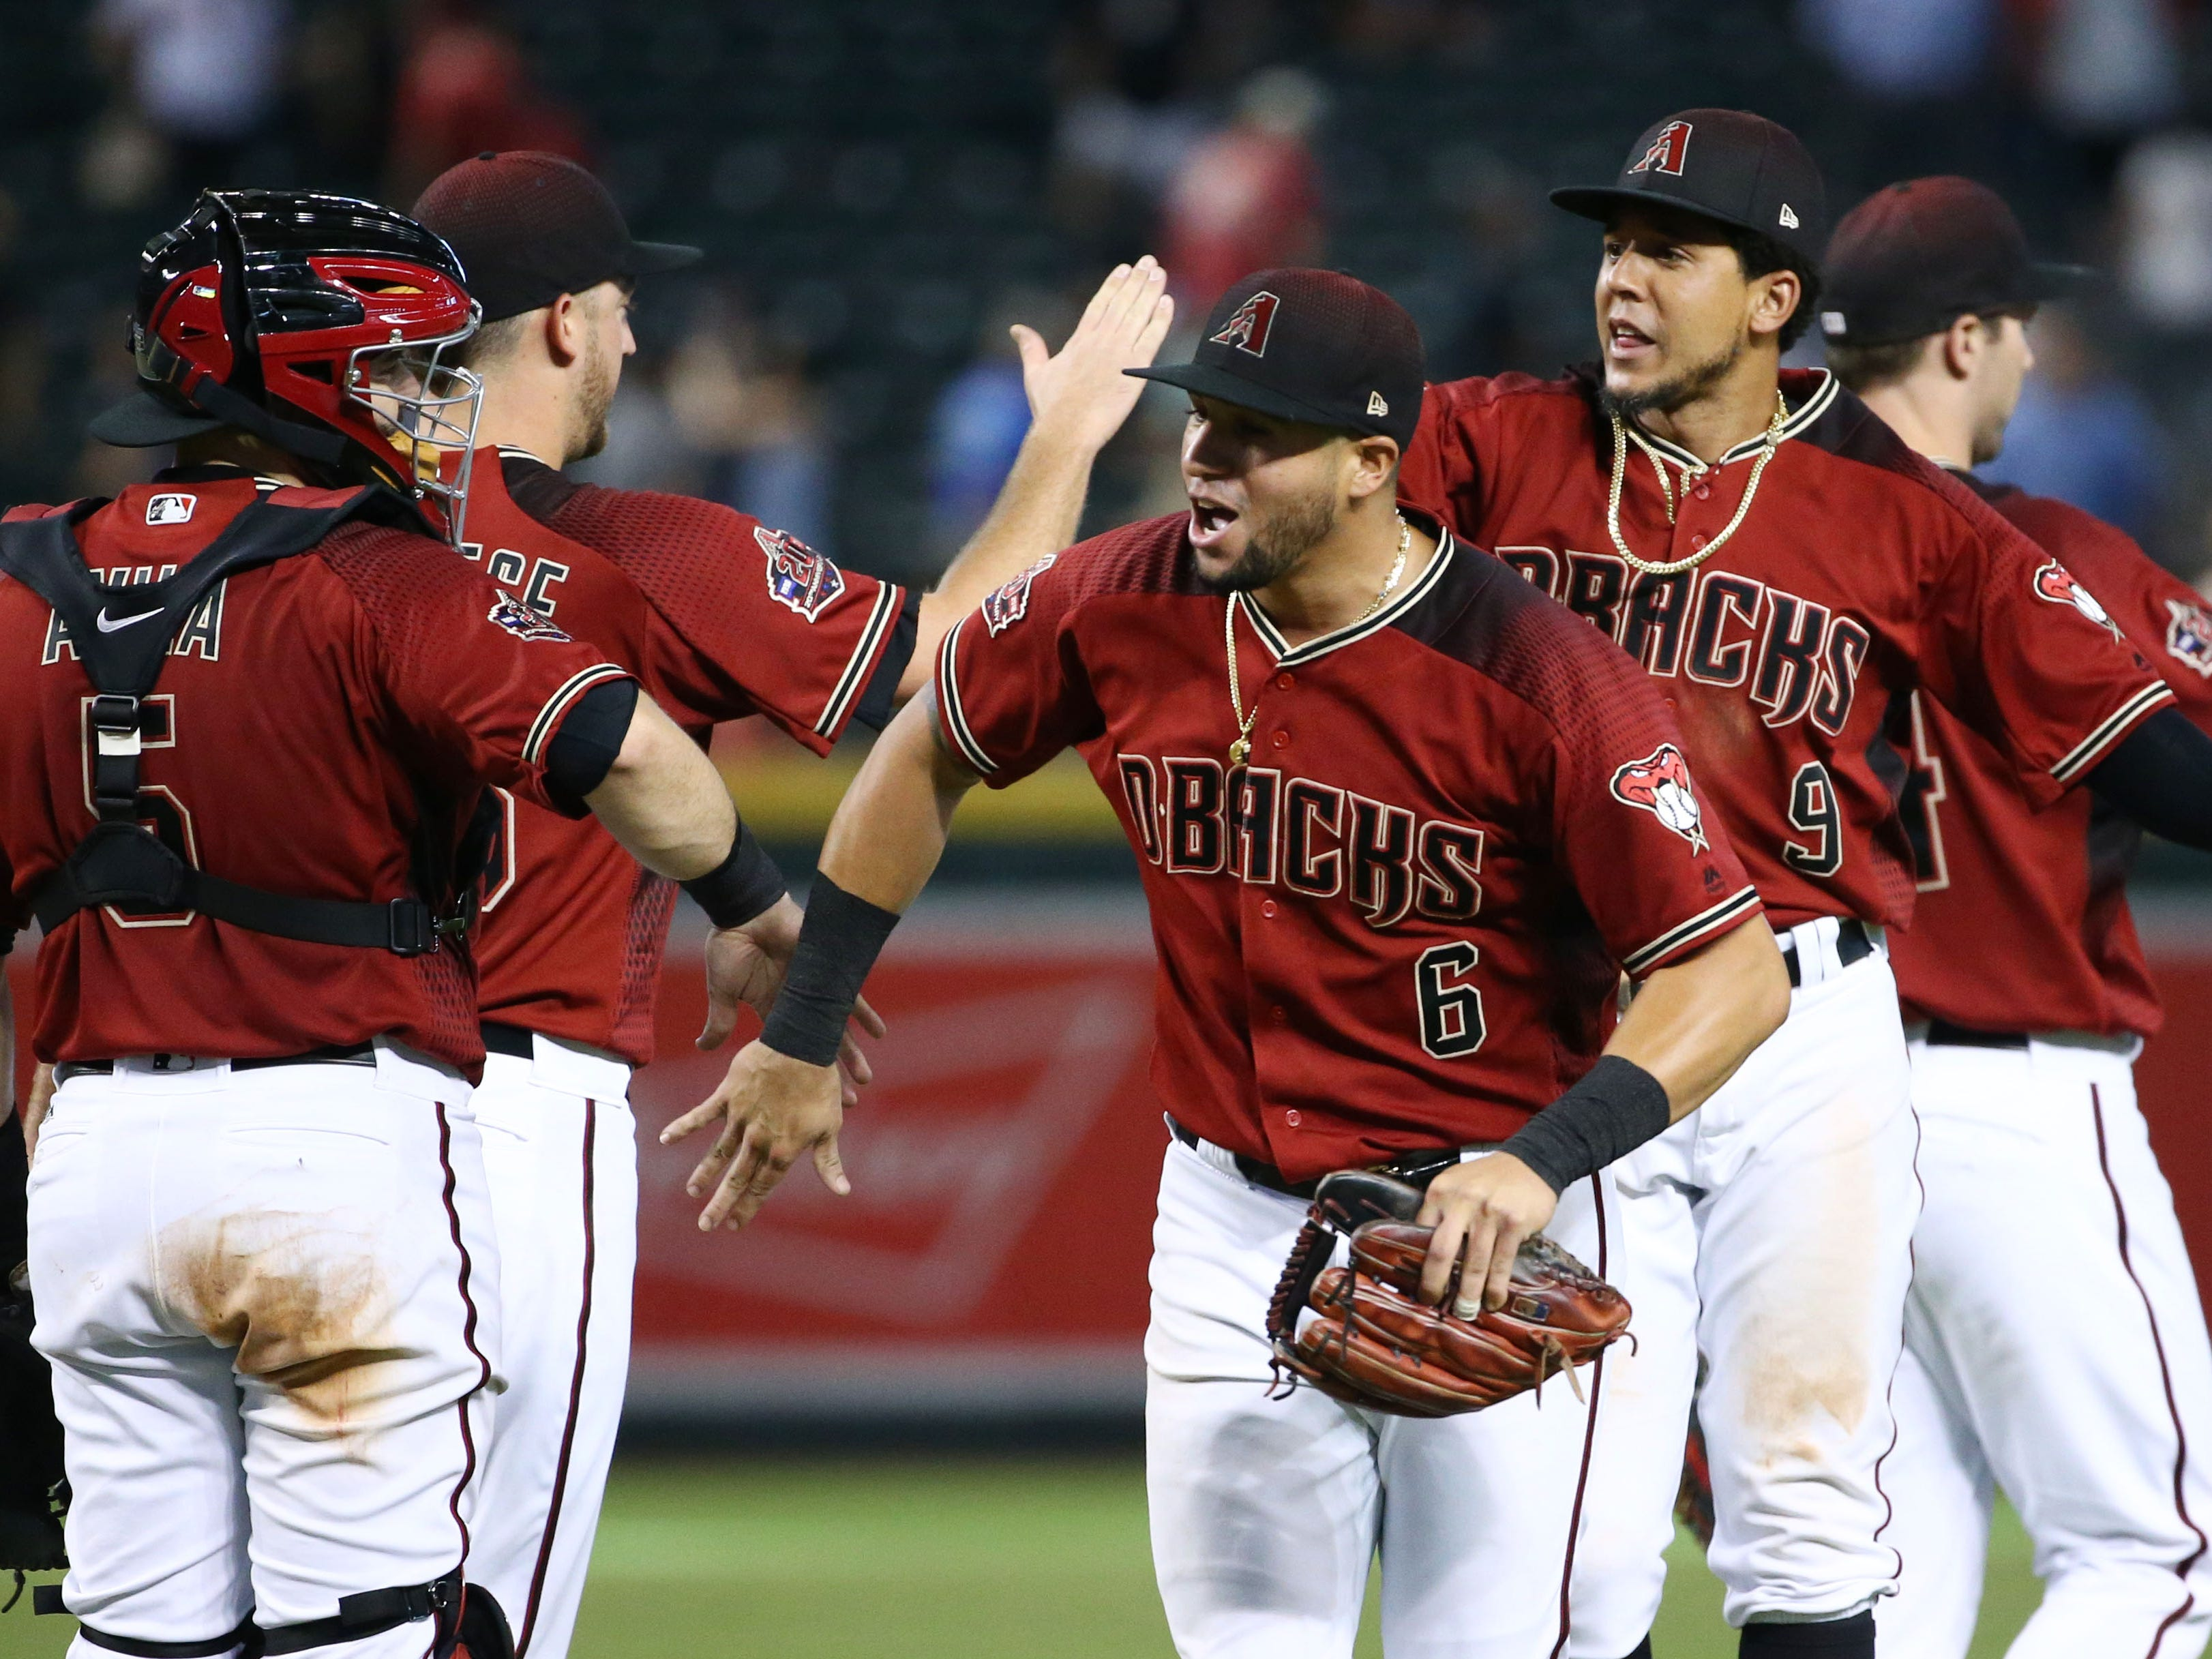 Arizona Diamondbacks David Peralta celebrates their 6-0 win over the Philadelphia Phillies on Aug. 8, 2018, at Chase Field in Phoenix, Ariz.